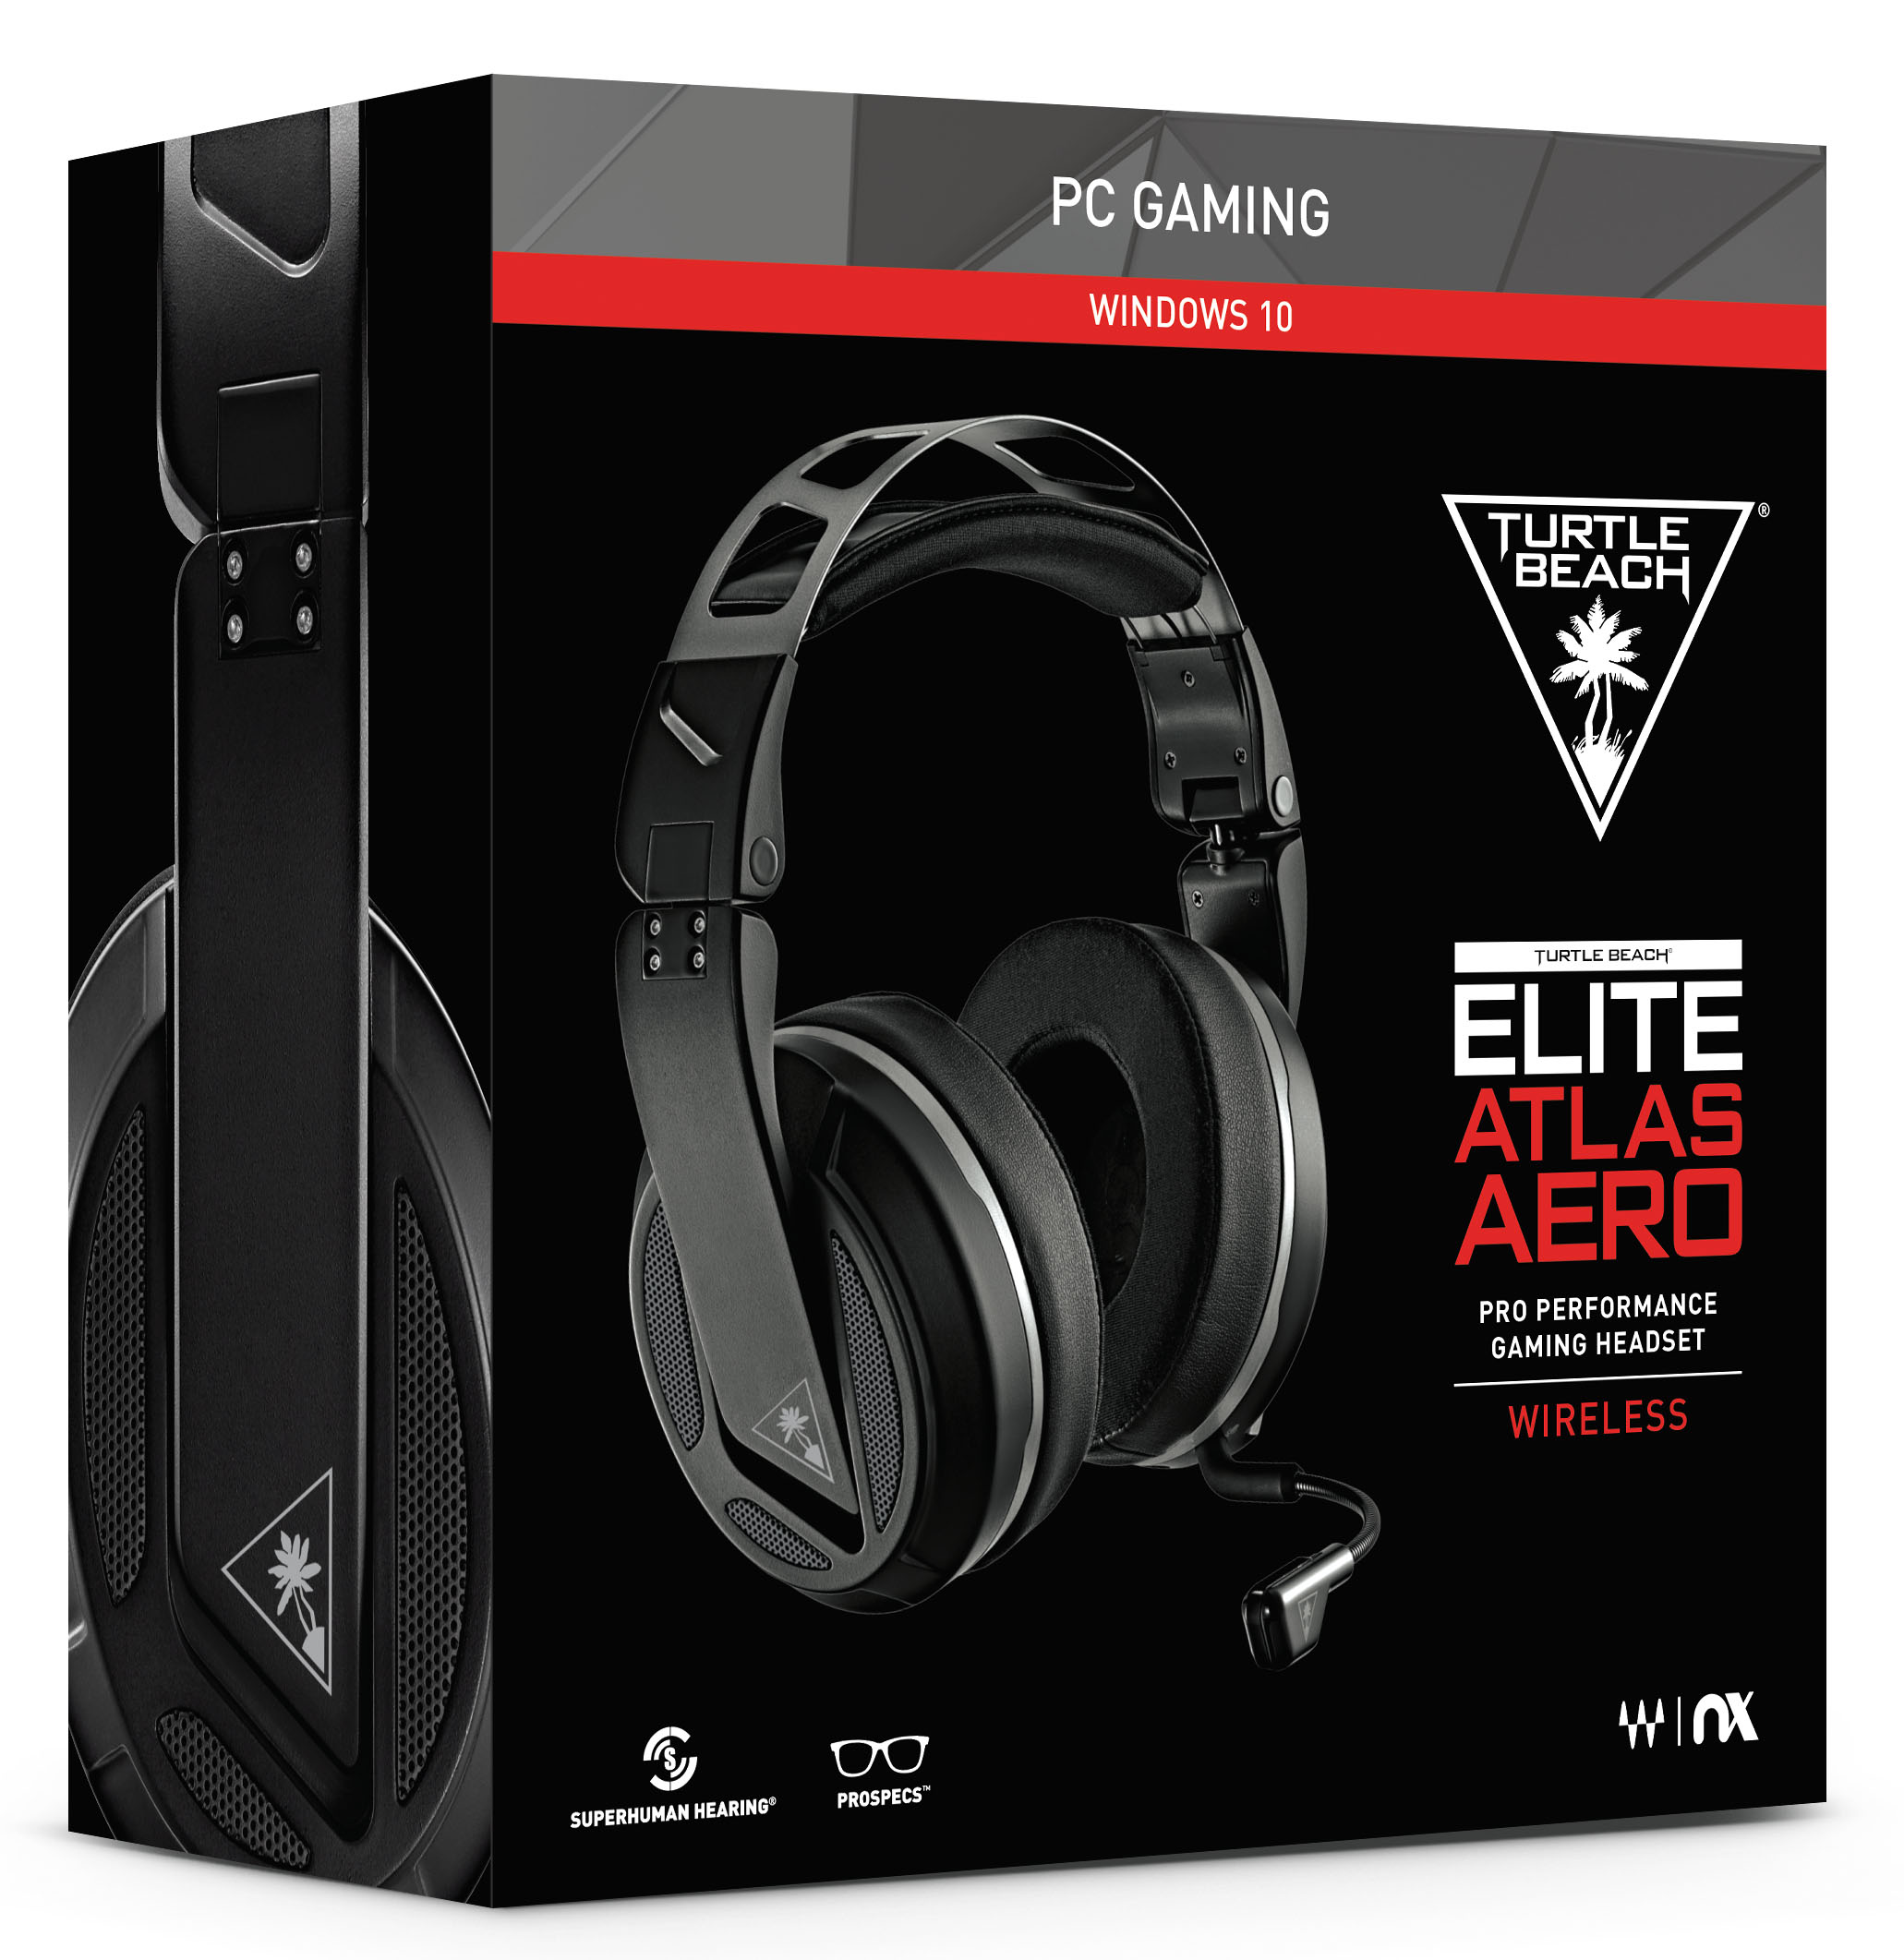 Turtle Beach - DISPONIBILI LE NUOVE ELITE ATLAS AERO 1